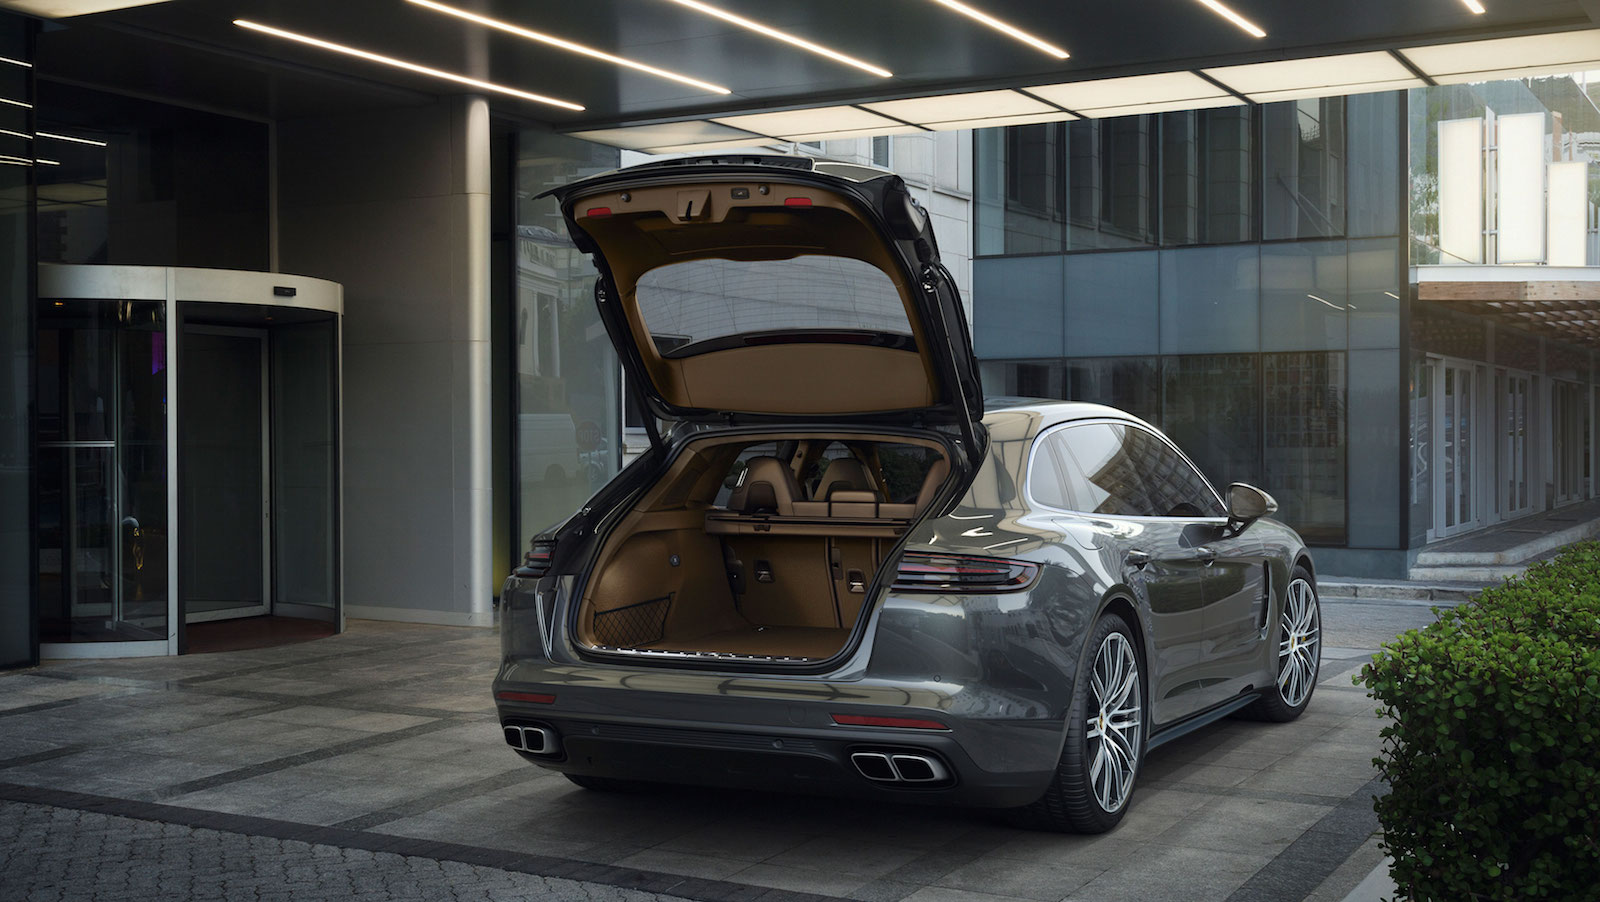 As The First Panamera To Feature Rear Seating For Three Passengers Its Optionally Available In A Four Seat Configuration Cargo Compartment Can Be